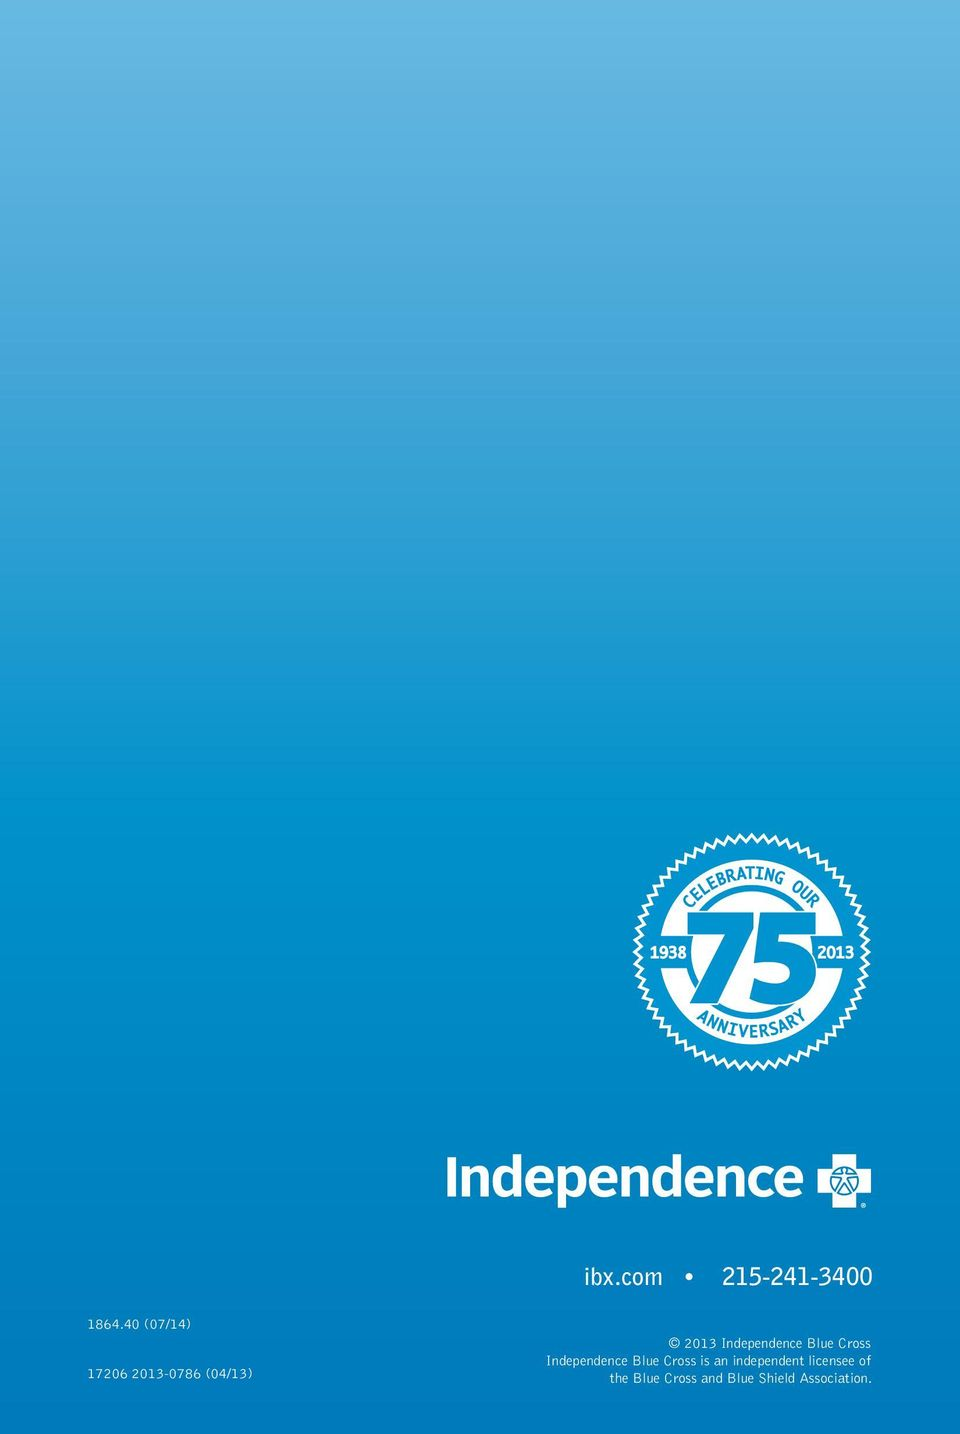 Independence Blue Cross Independence Blue